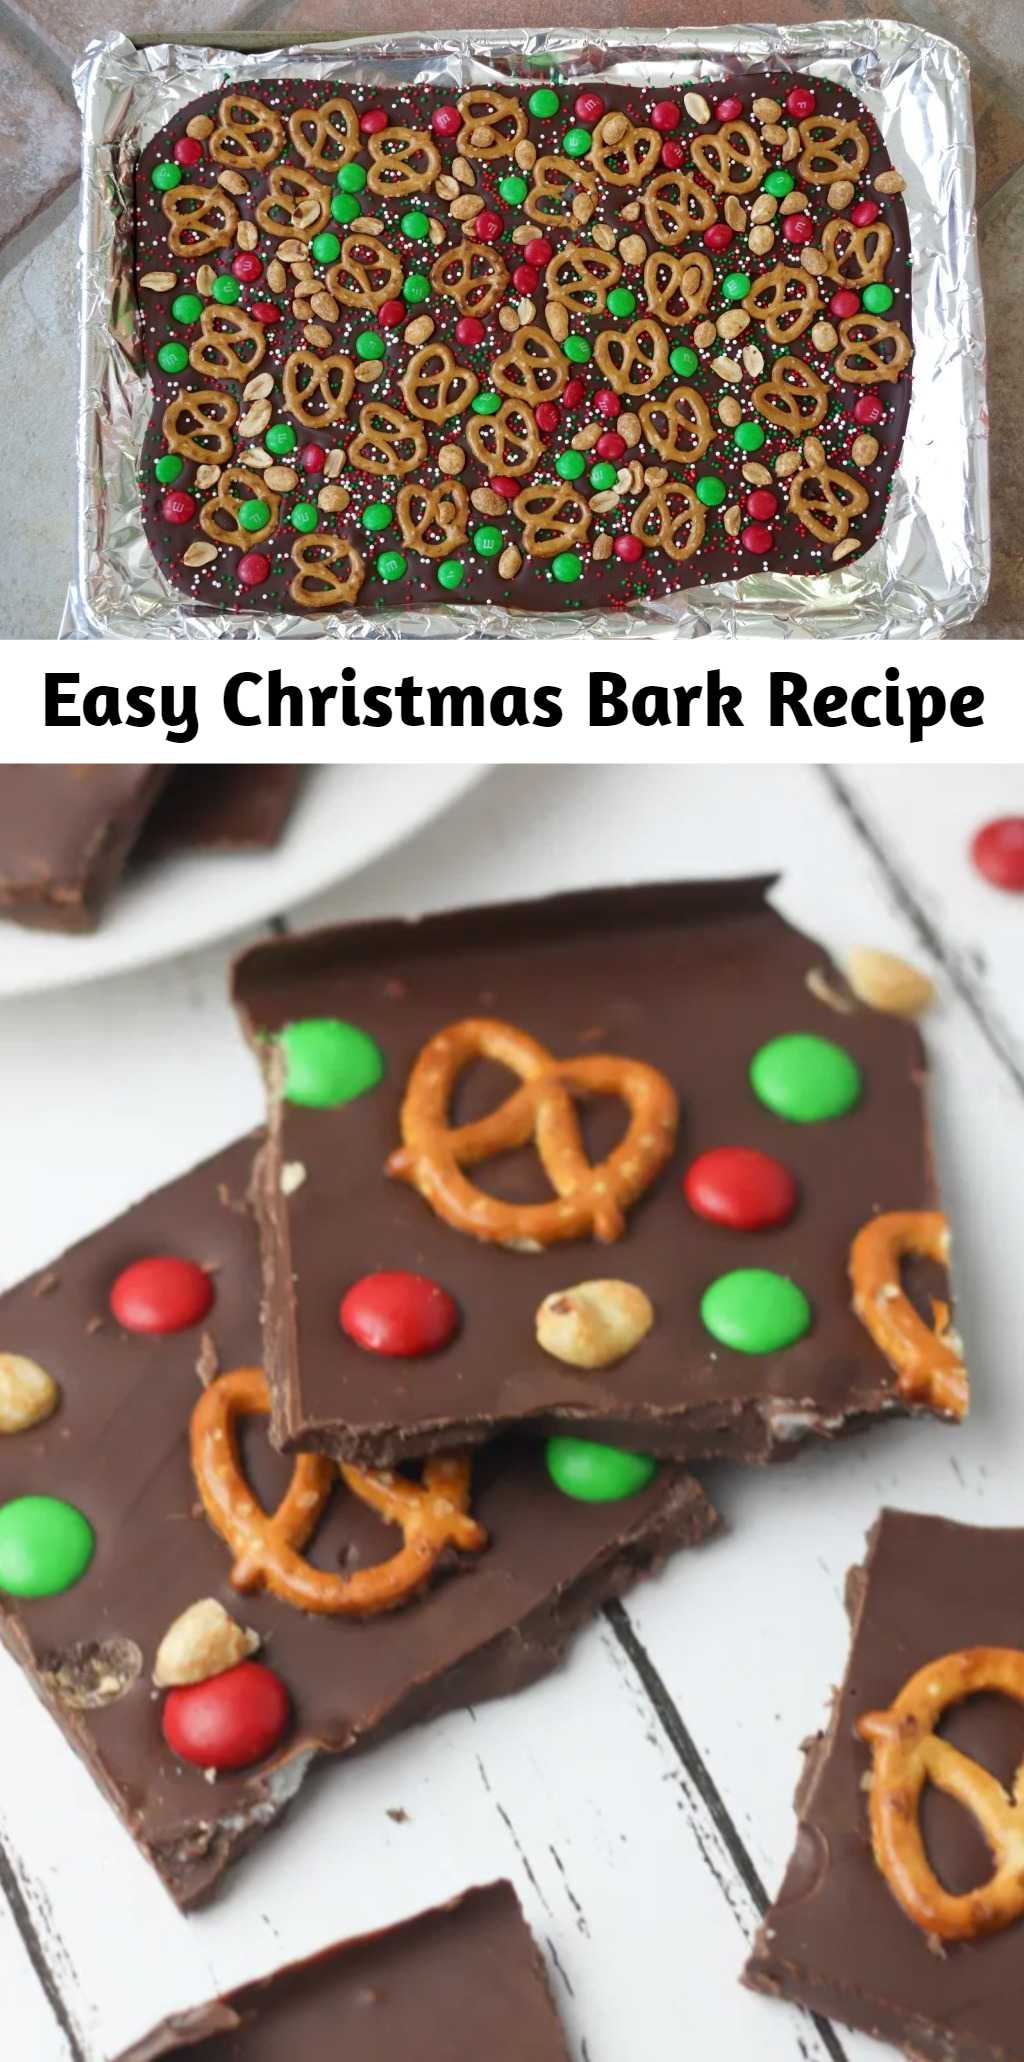 Easy Christmas Bark Recipe - Super easy and simple snack or dessert. This Easy Christmas Bark recipe is packed with salty pretzels and sweet chocolate candy. It's incredibly simple to put together and makes a great holiday treat or gift to give to any family member, neighbor or friend.